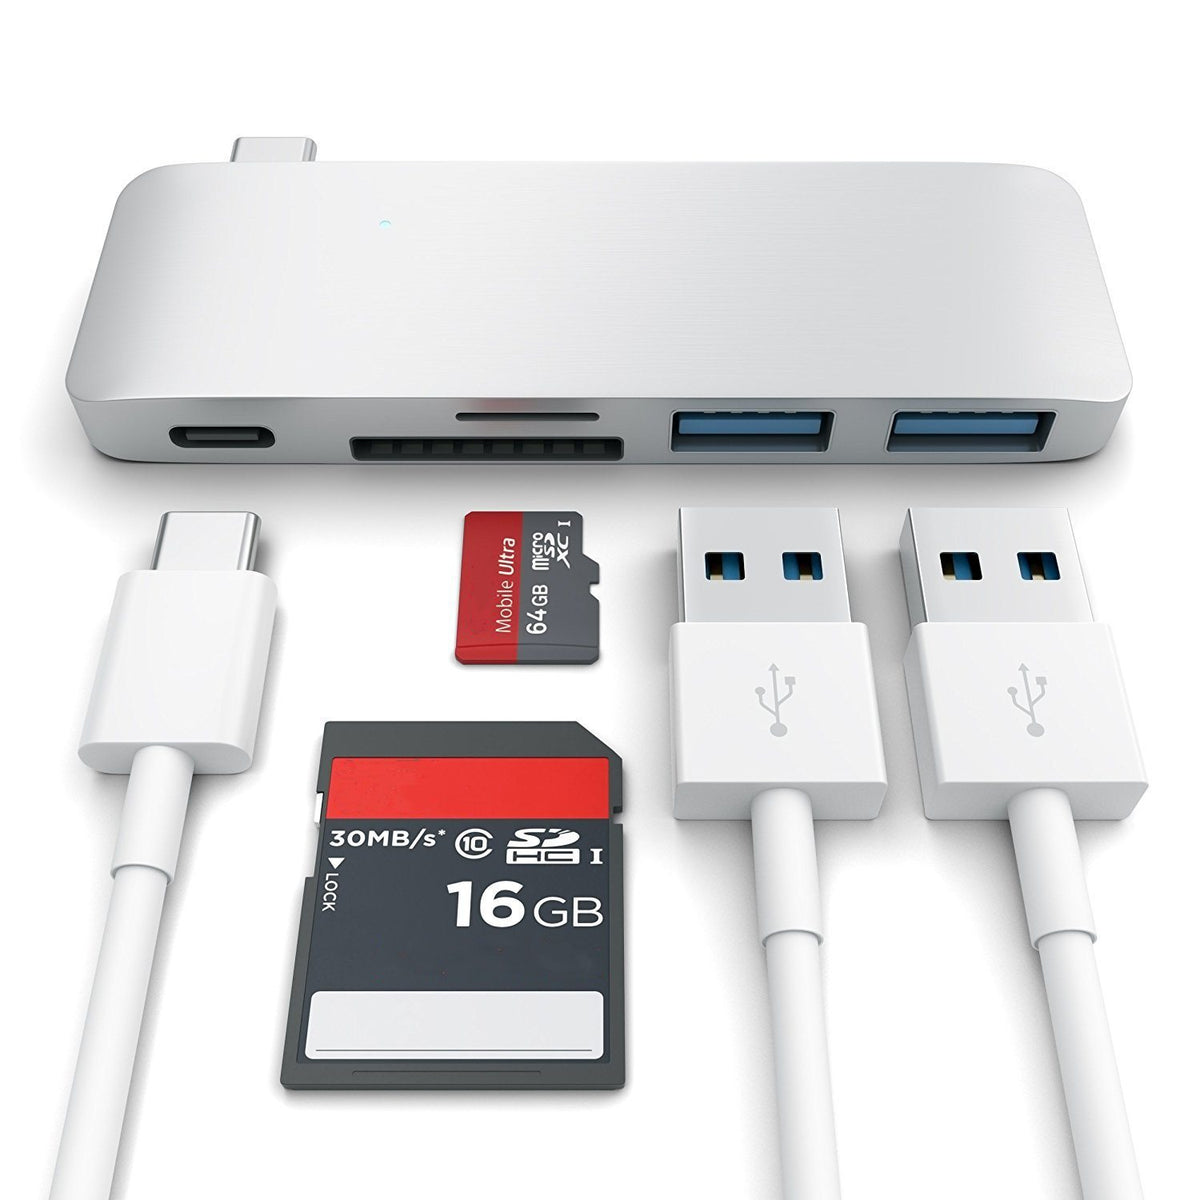 Type-C USB 3.0 3 in 1 Combo Hub